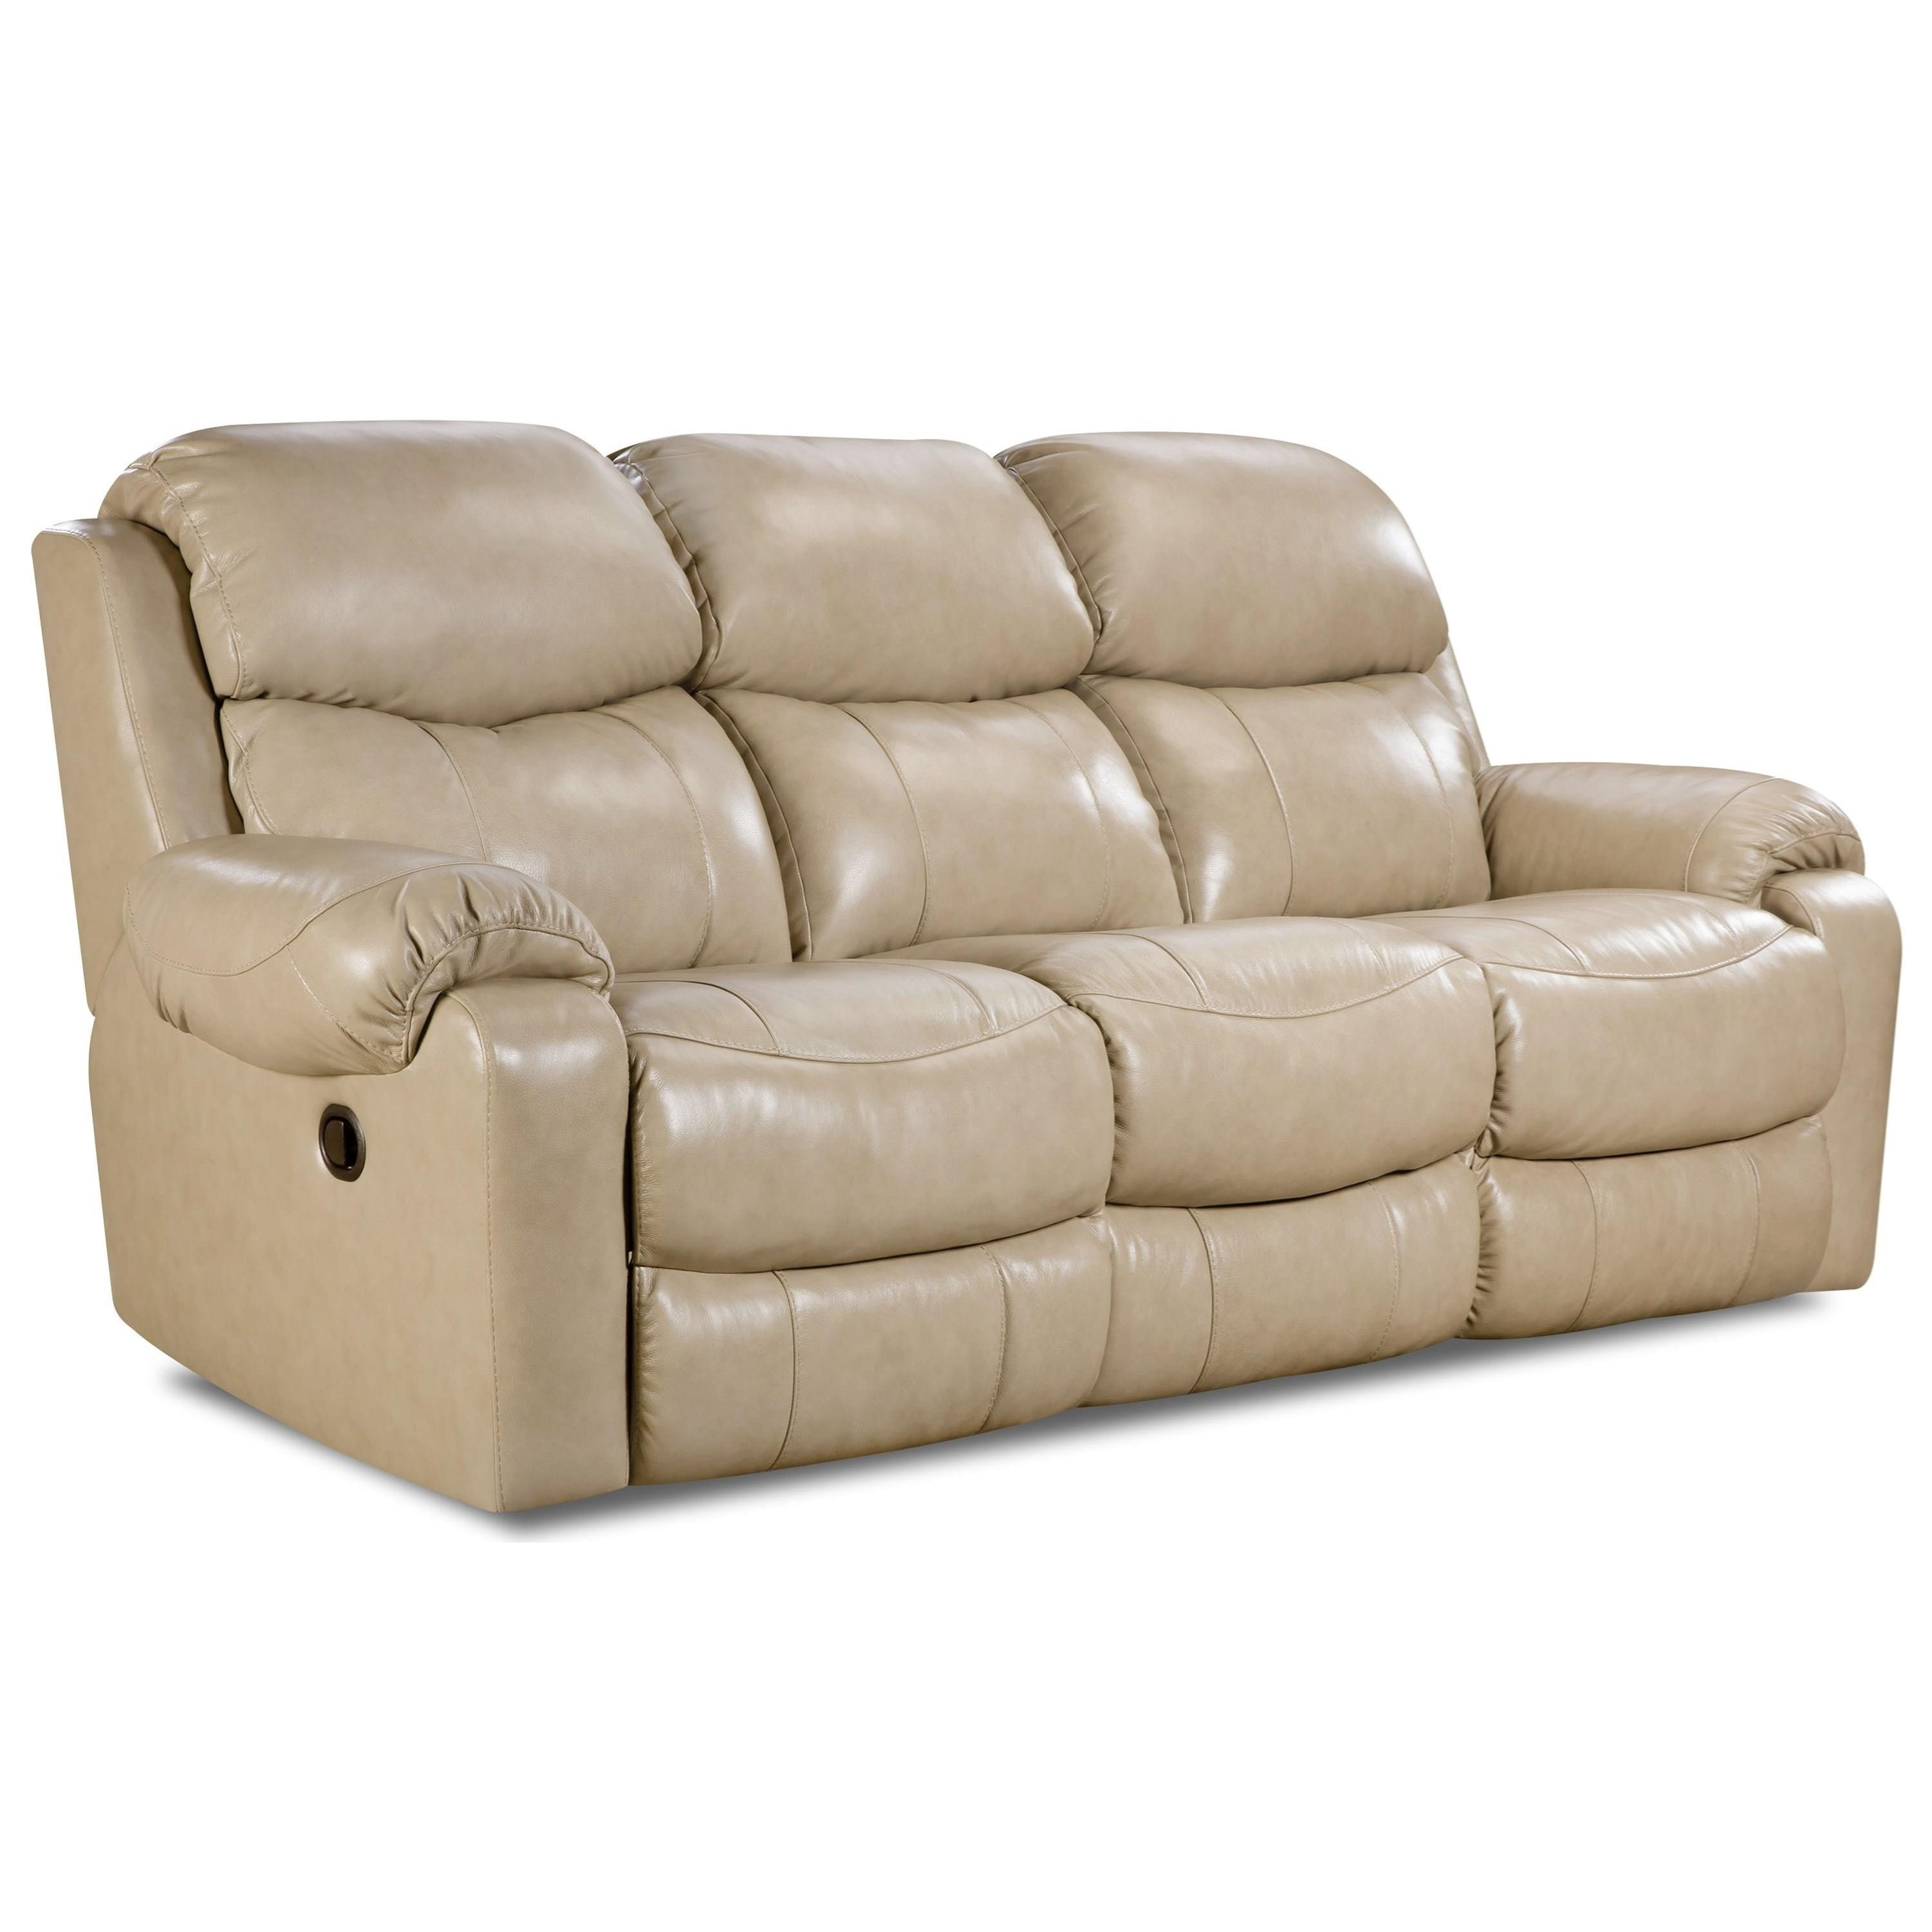 Comfort Living 135 Collection Double Reclining Sofa - Item Number: 135-30-10